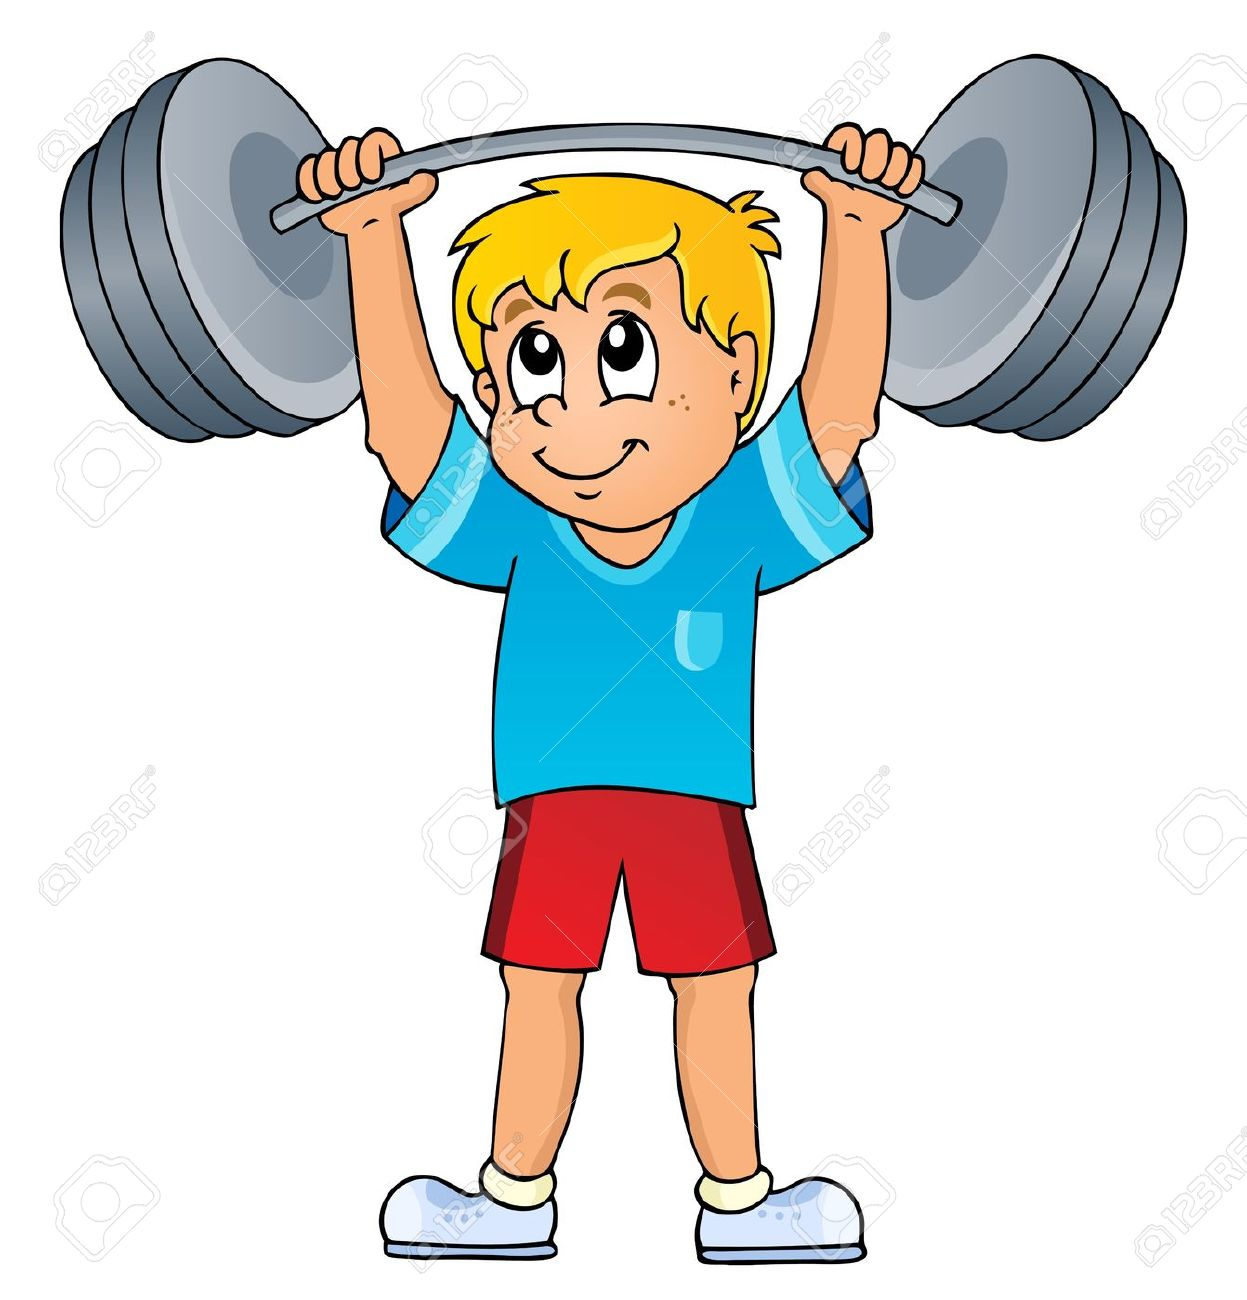 Weight lifting pictures clipart banner library Girl Lifting Weights Clipart | Free download best Girl Lifting ... banner library